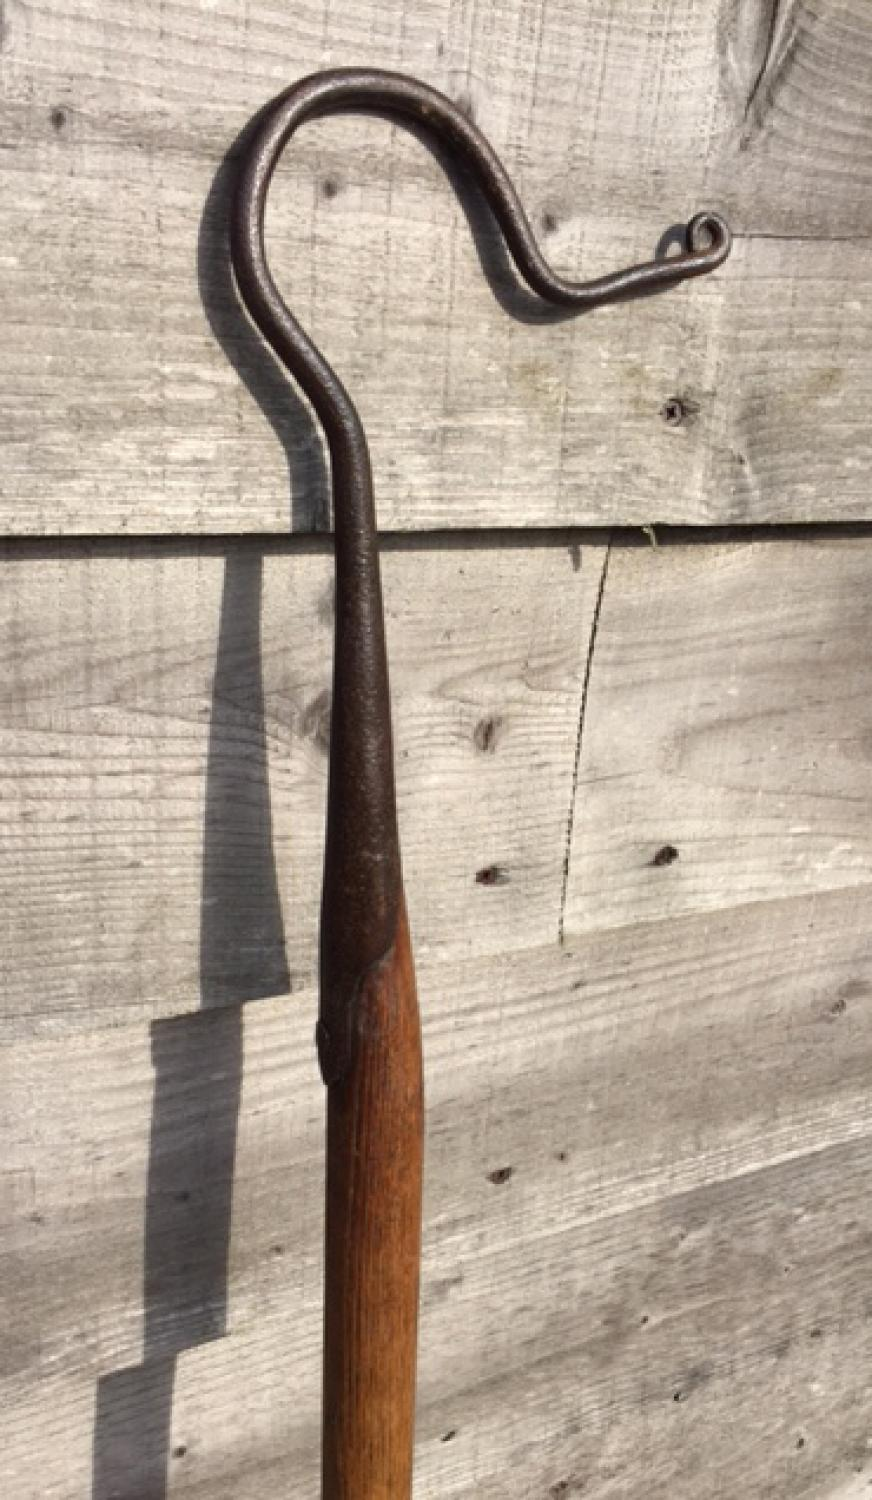 19th Cent Dorset Shepherd's Leg Crook